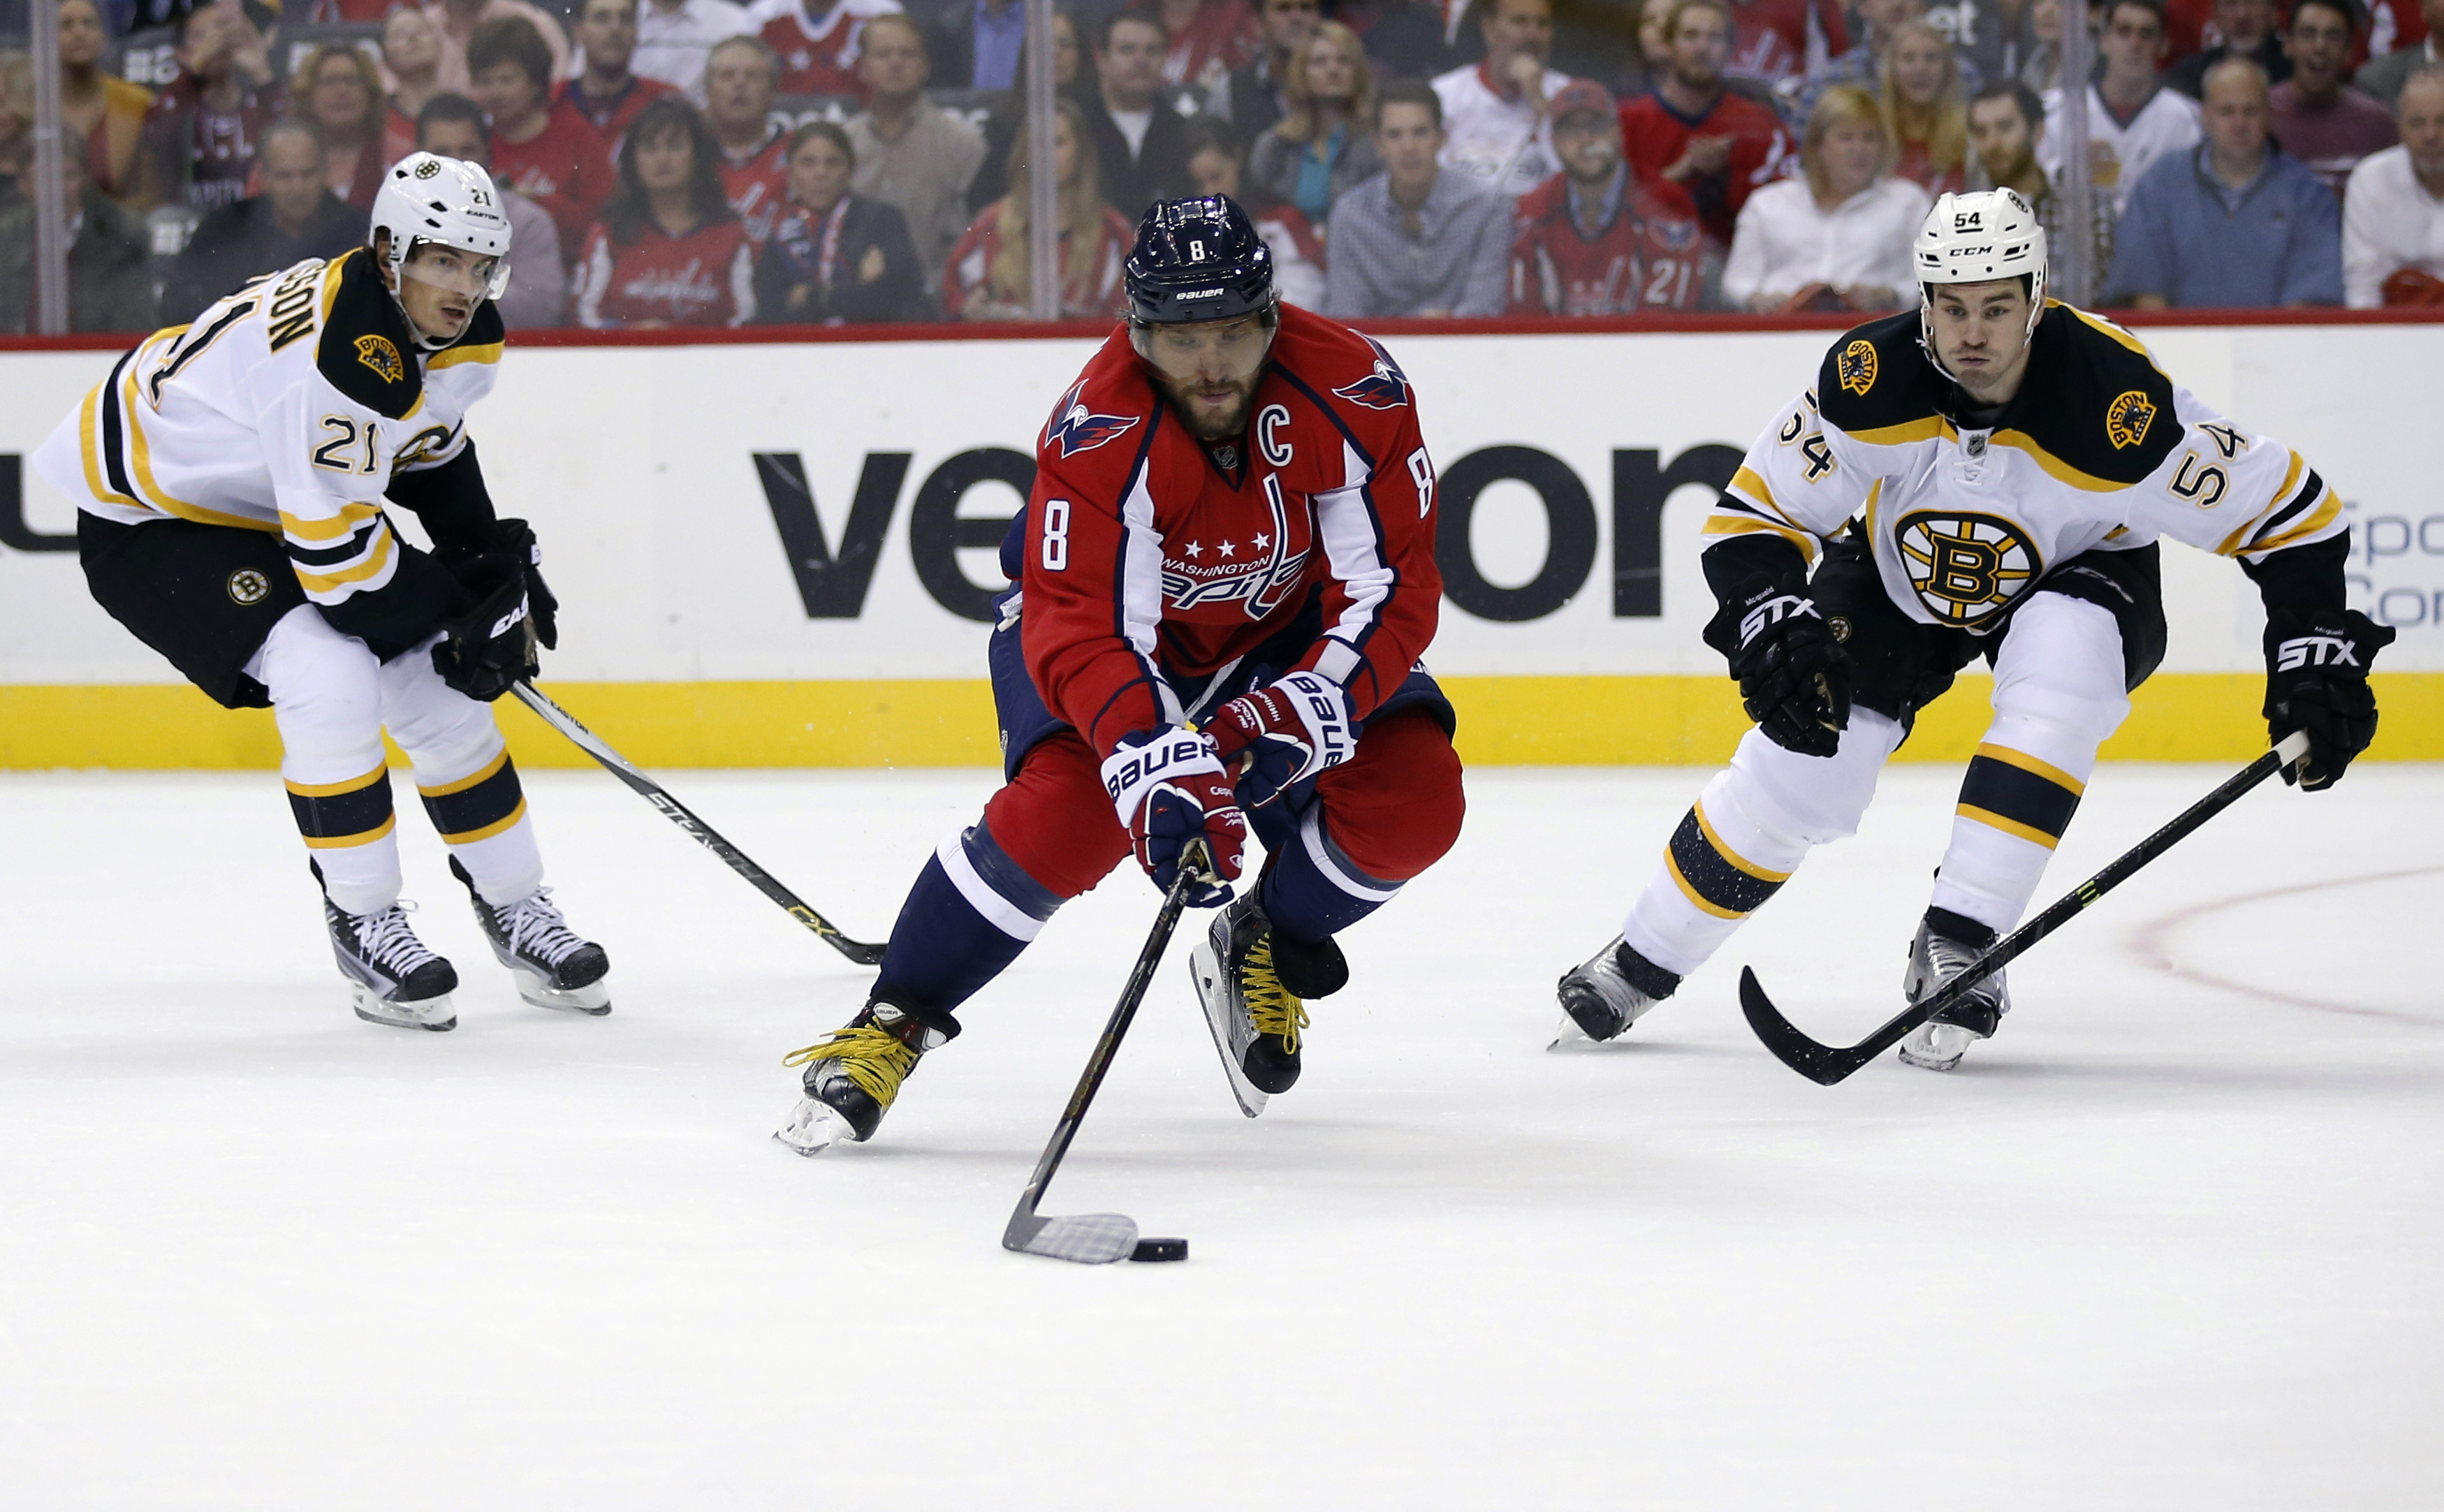 Washington Capitals left wing Alex Ovechkin (8), from Russia, skates with the puck between Boston Bruins left wing Loui Eriksson (21), from Sweden, and defenseman Adam McQuaid (54) during the first period of an NHL hockey game, Thursday, Nov. 5, 2015, in